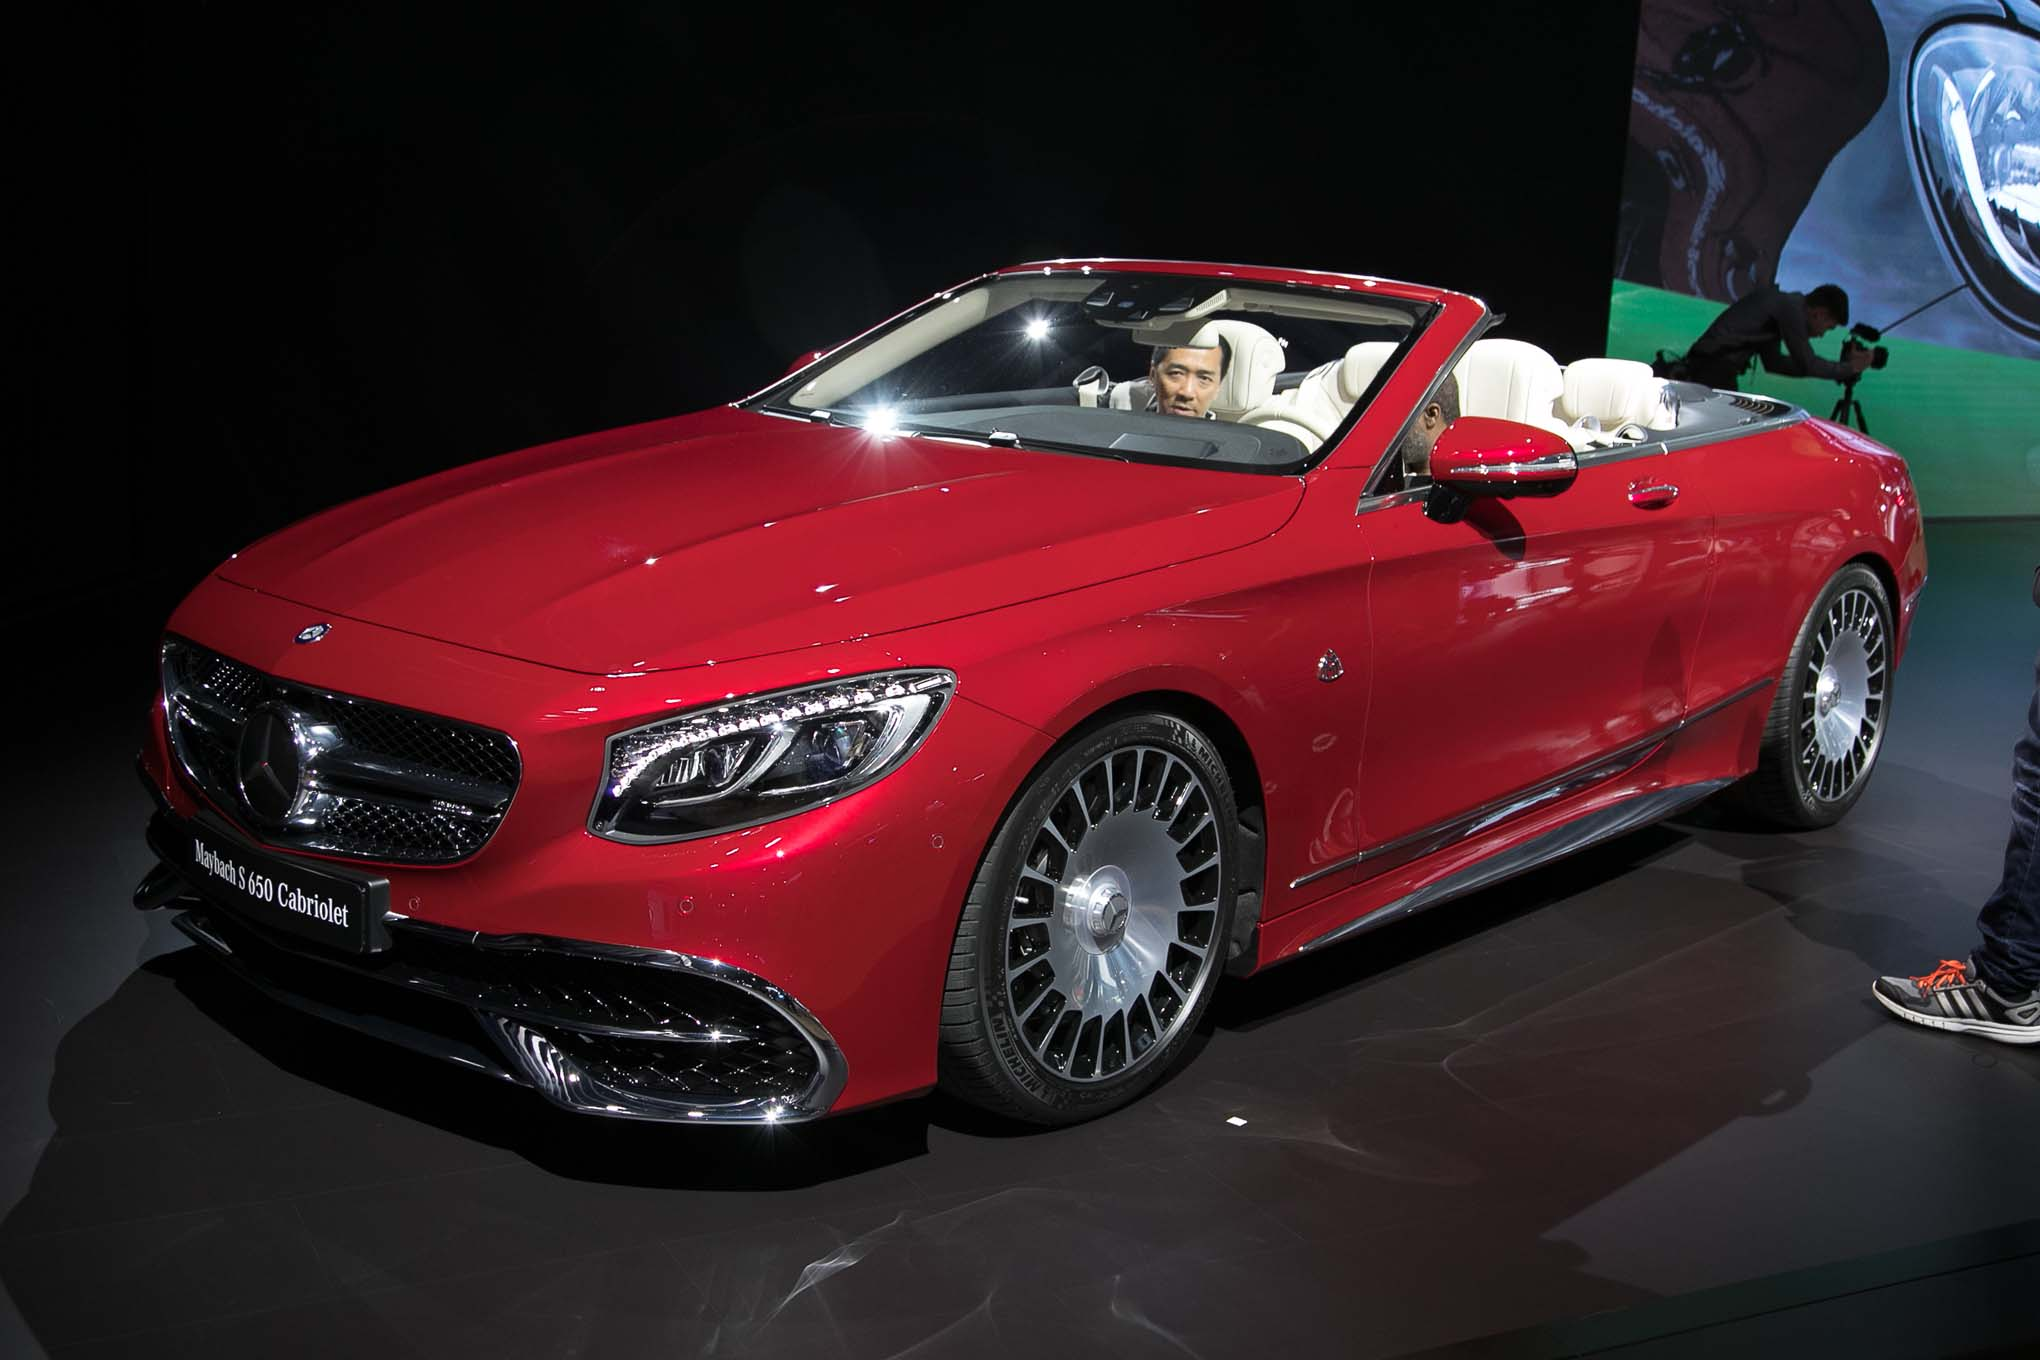 https://st.automobilemag.com/uploads/sites/11/2016/11/2018-Mercedes-Maybach-S650-Cabriolet-front-three-quarter-1.jpg